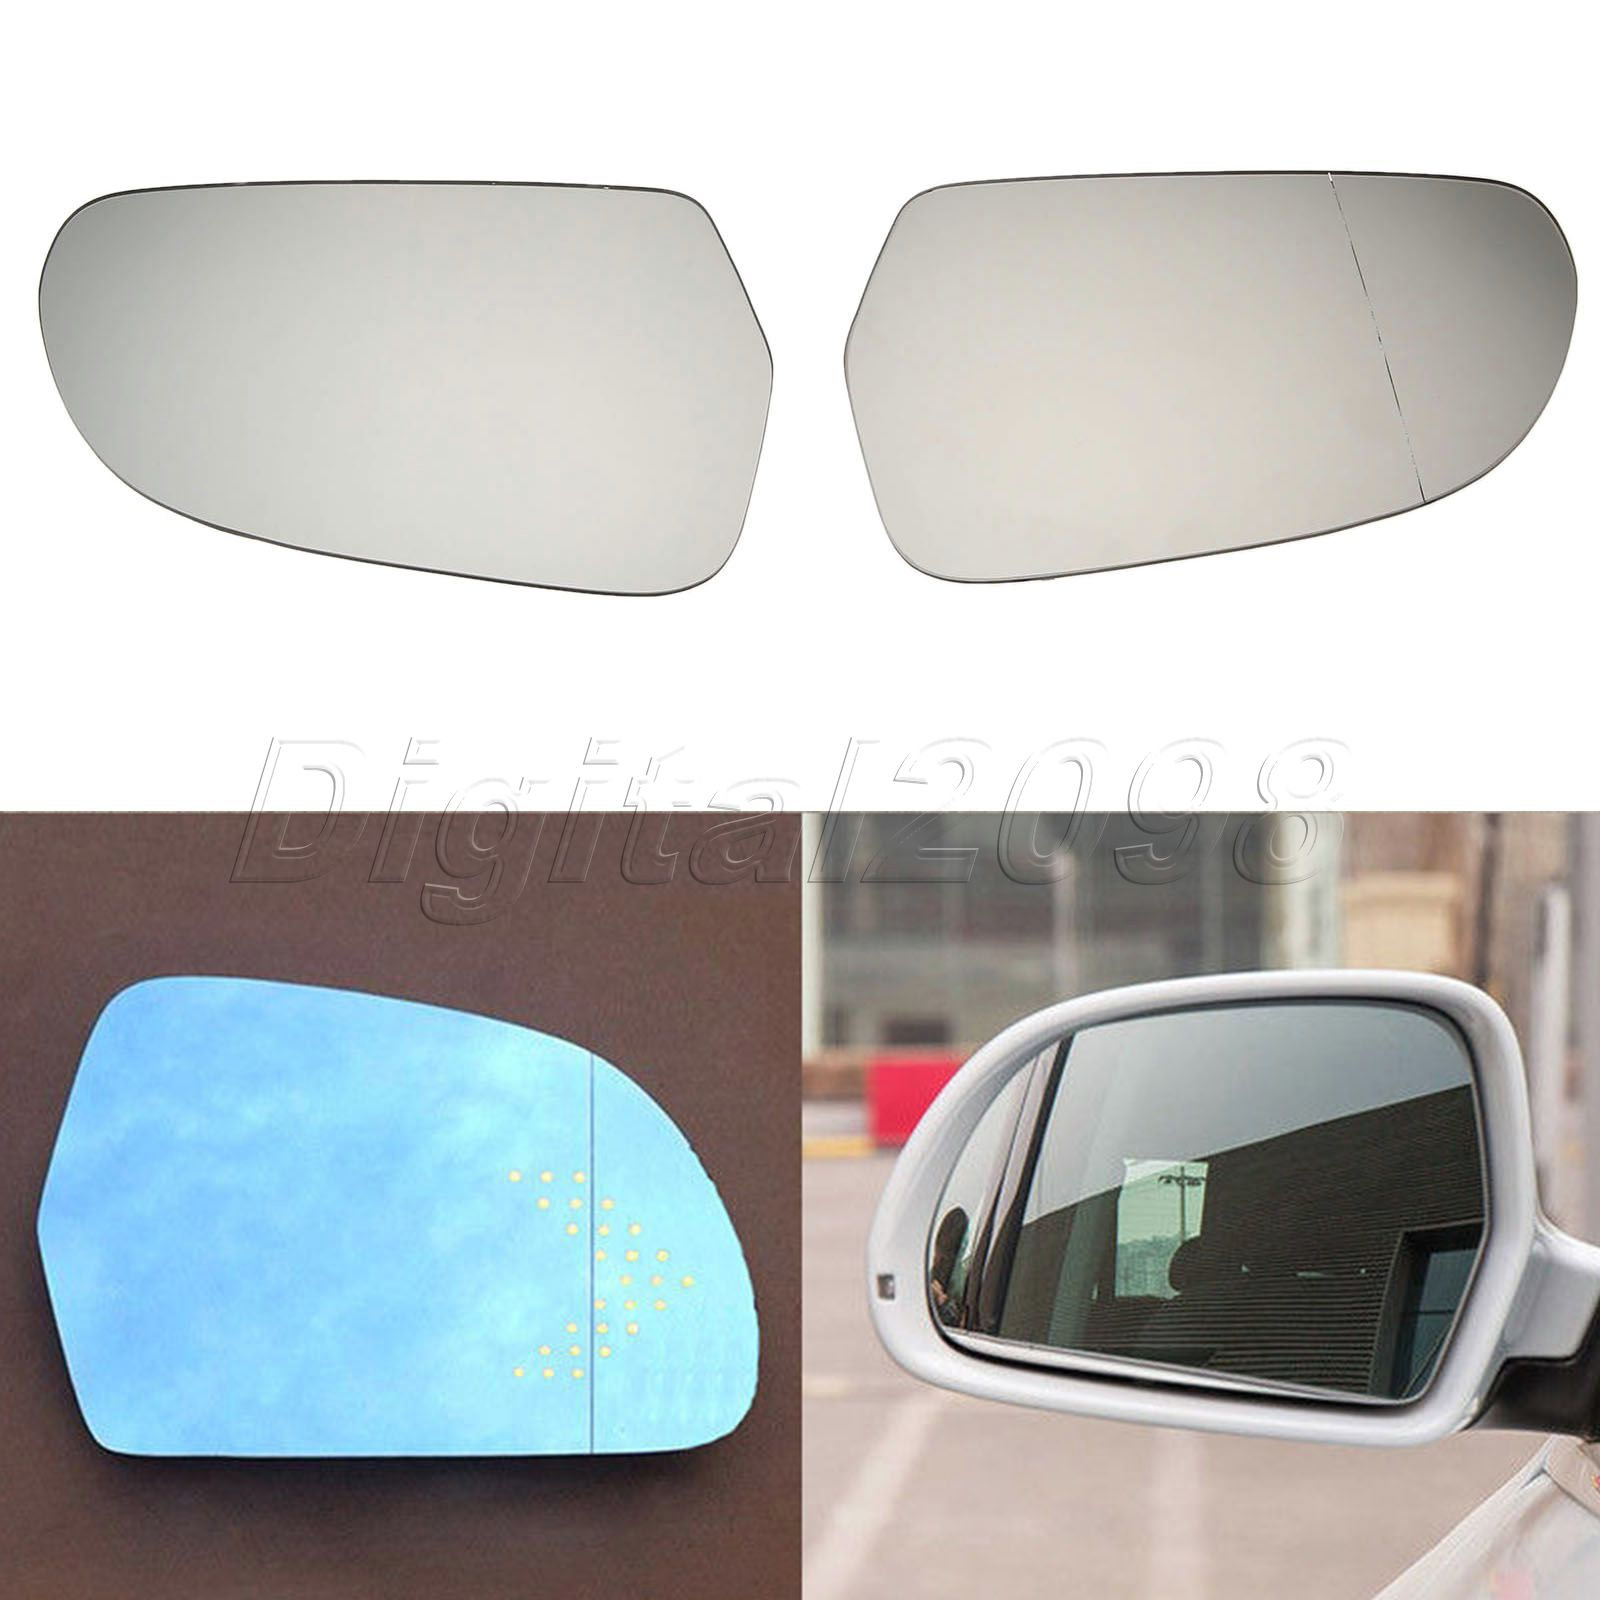 2Pcs L+R Car Heated Door Wing Mirror Glass Rearview Side Mirrors For Audi A3 A4 S4 A5 A6 S6 A8 Allroad Q3 Skoda Octavia Superb